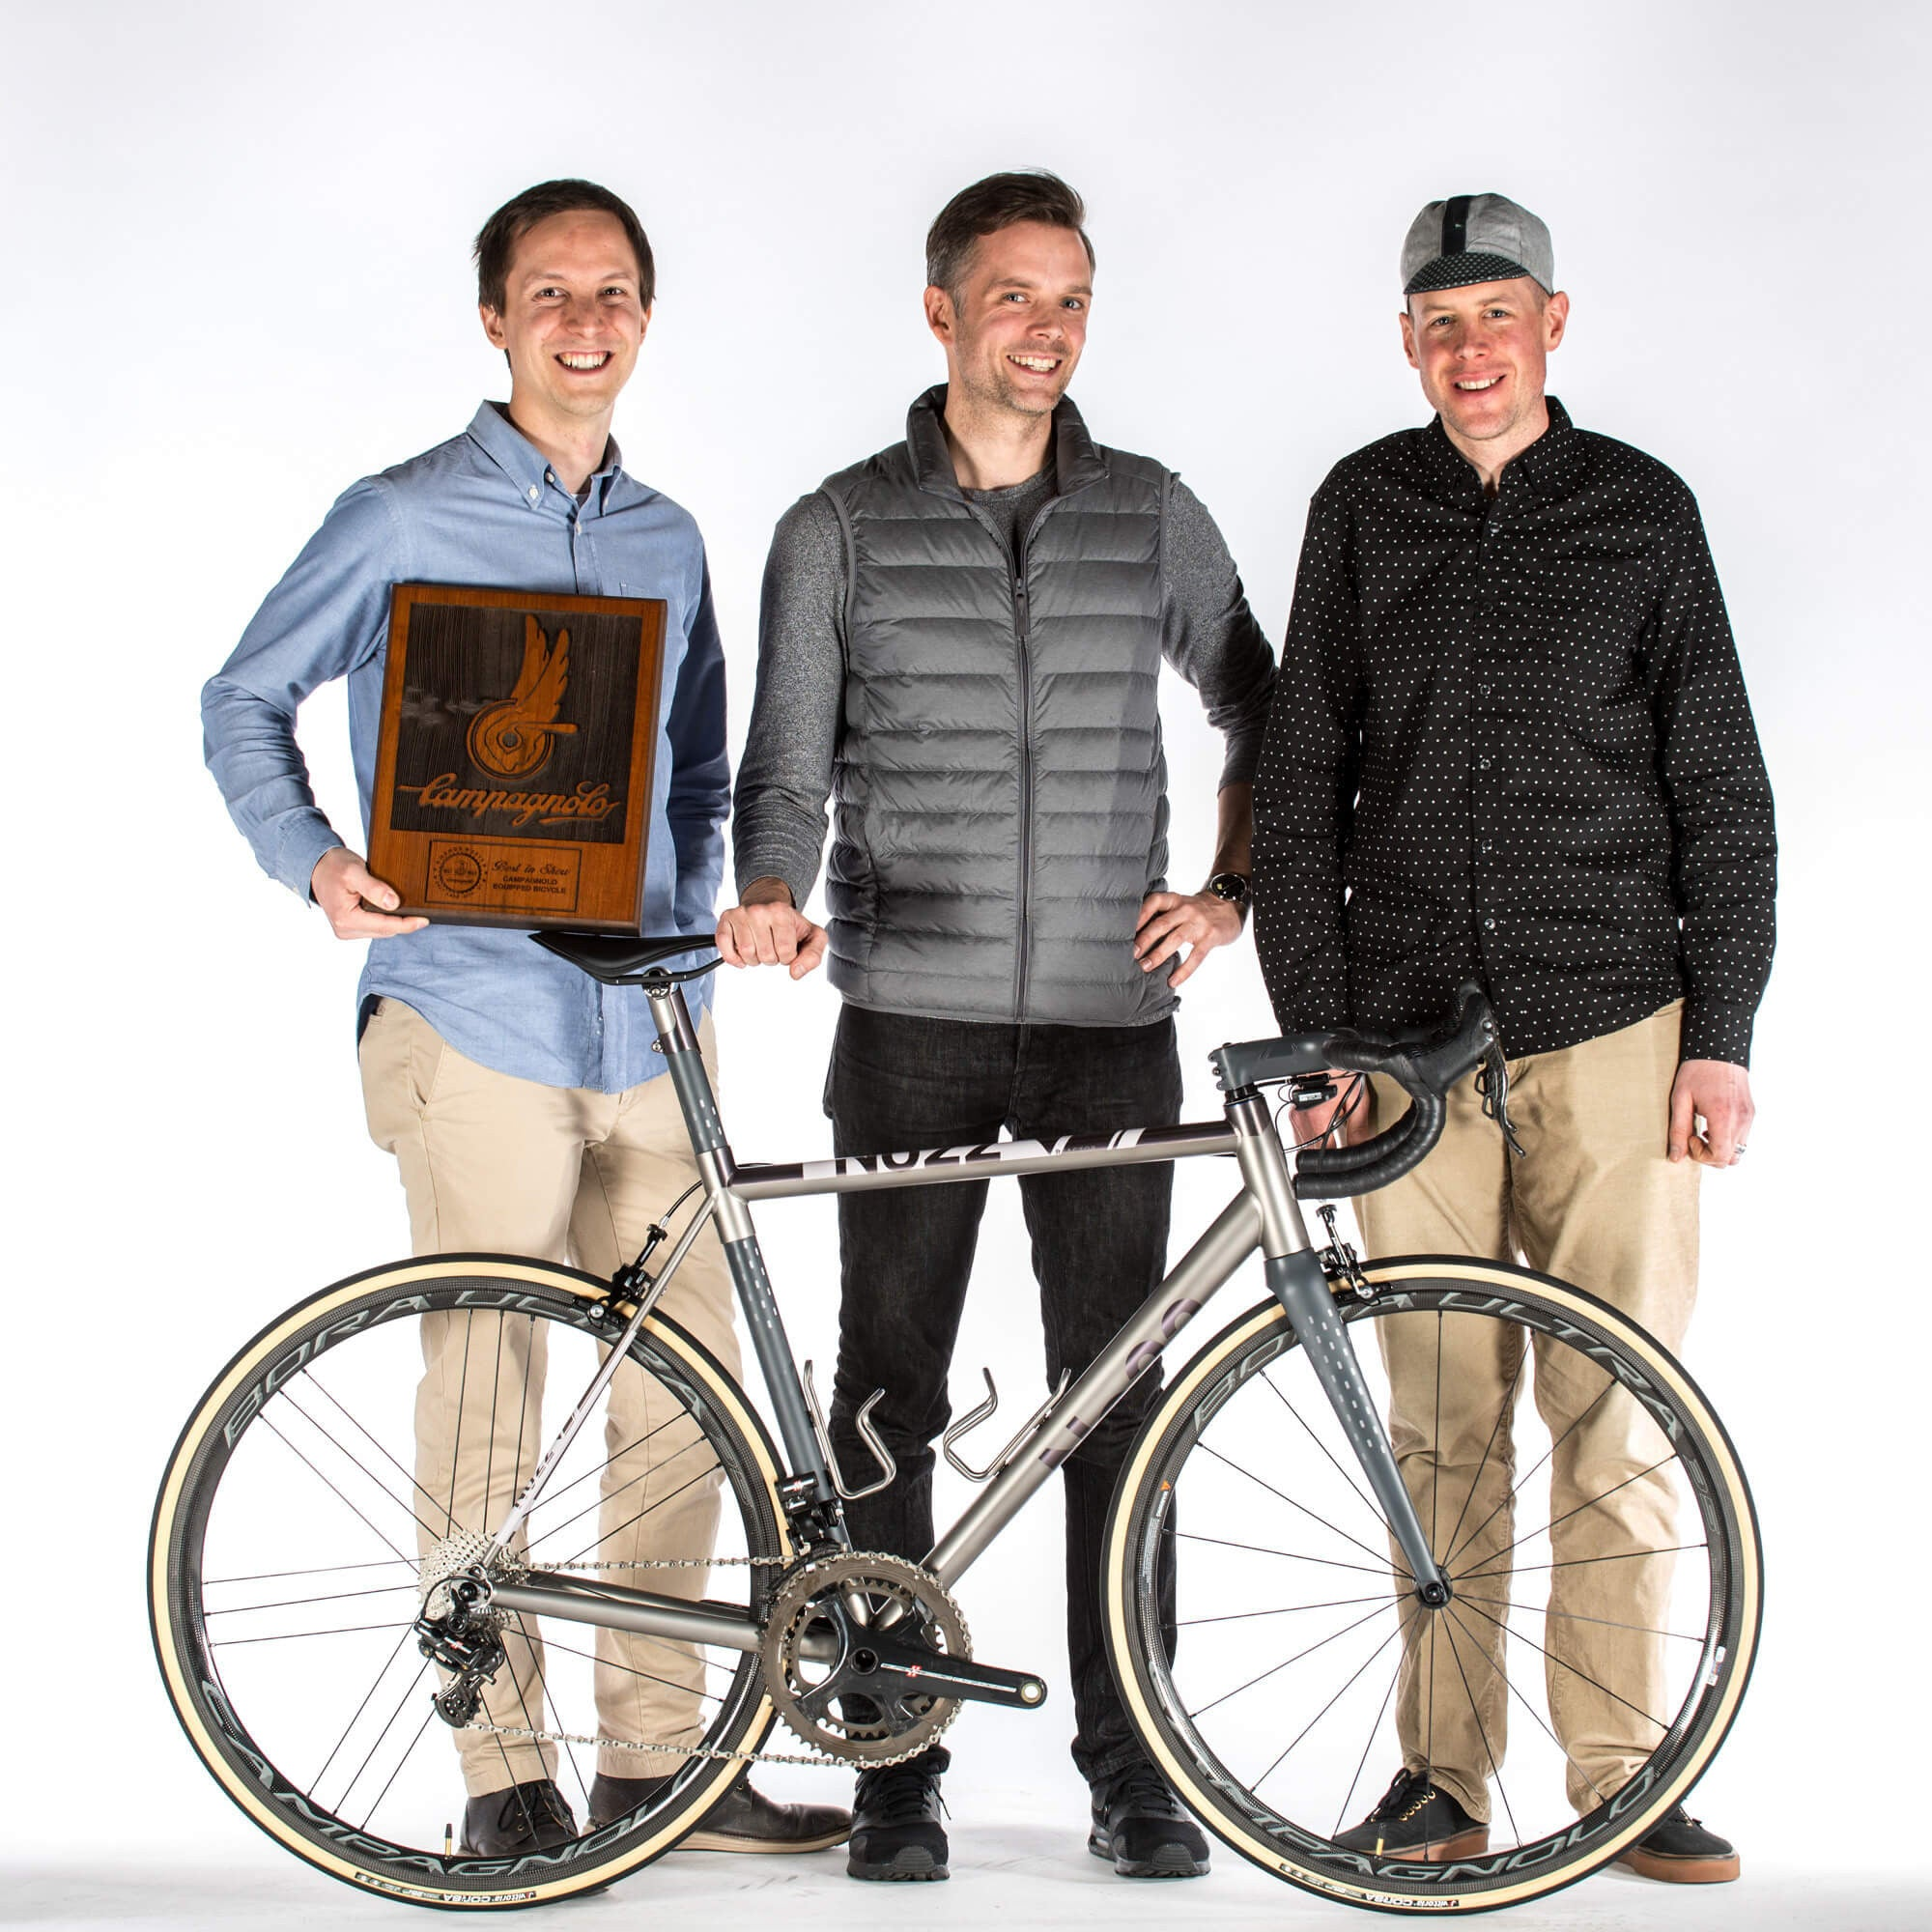 No. 22 2017 NAHBS Campagnolo Best in Show Award